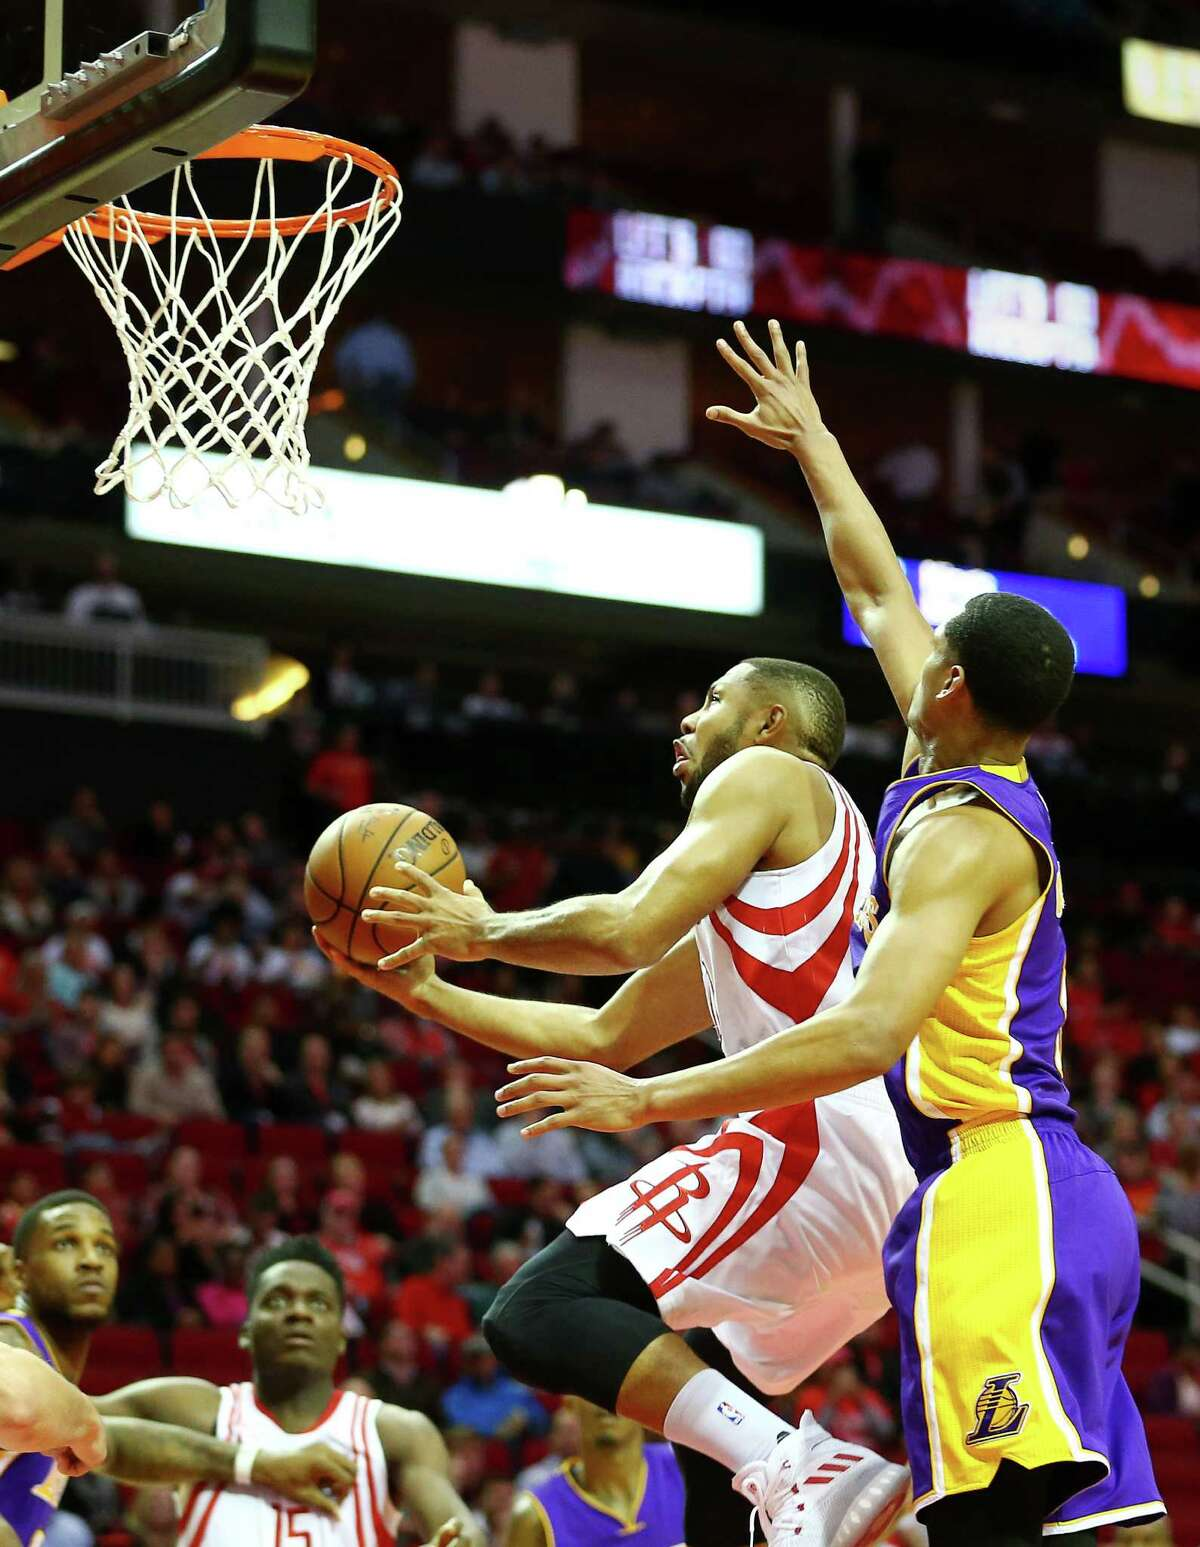 Houston Rockets guard Eric Gordon (10) drives to the basket while under pressure from Los Angeles Lakers guard Jordan Clarkson (6) during the second quarter of an NBA game at the Toyota Center, Wednesday, Dec. 7, 2016, in Houston.